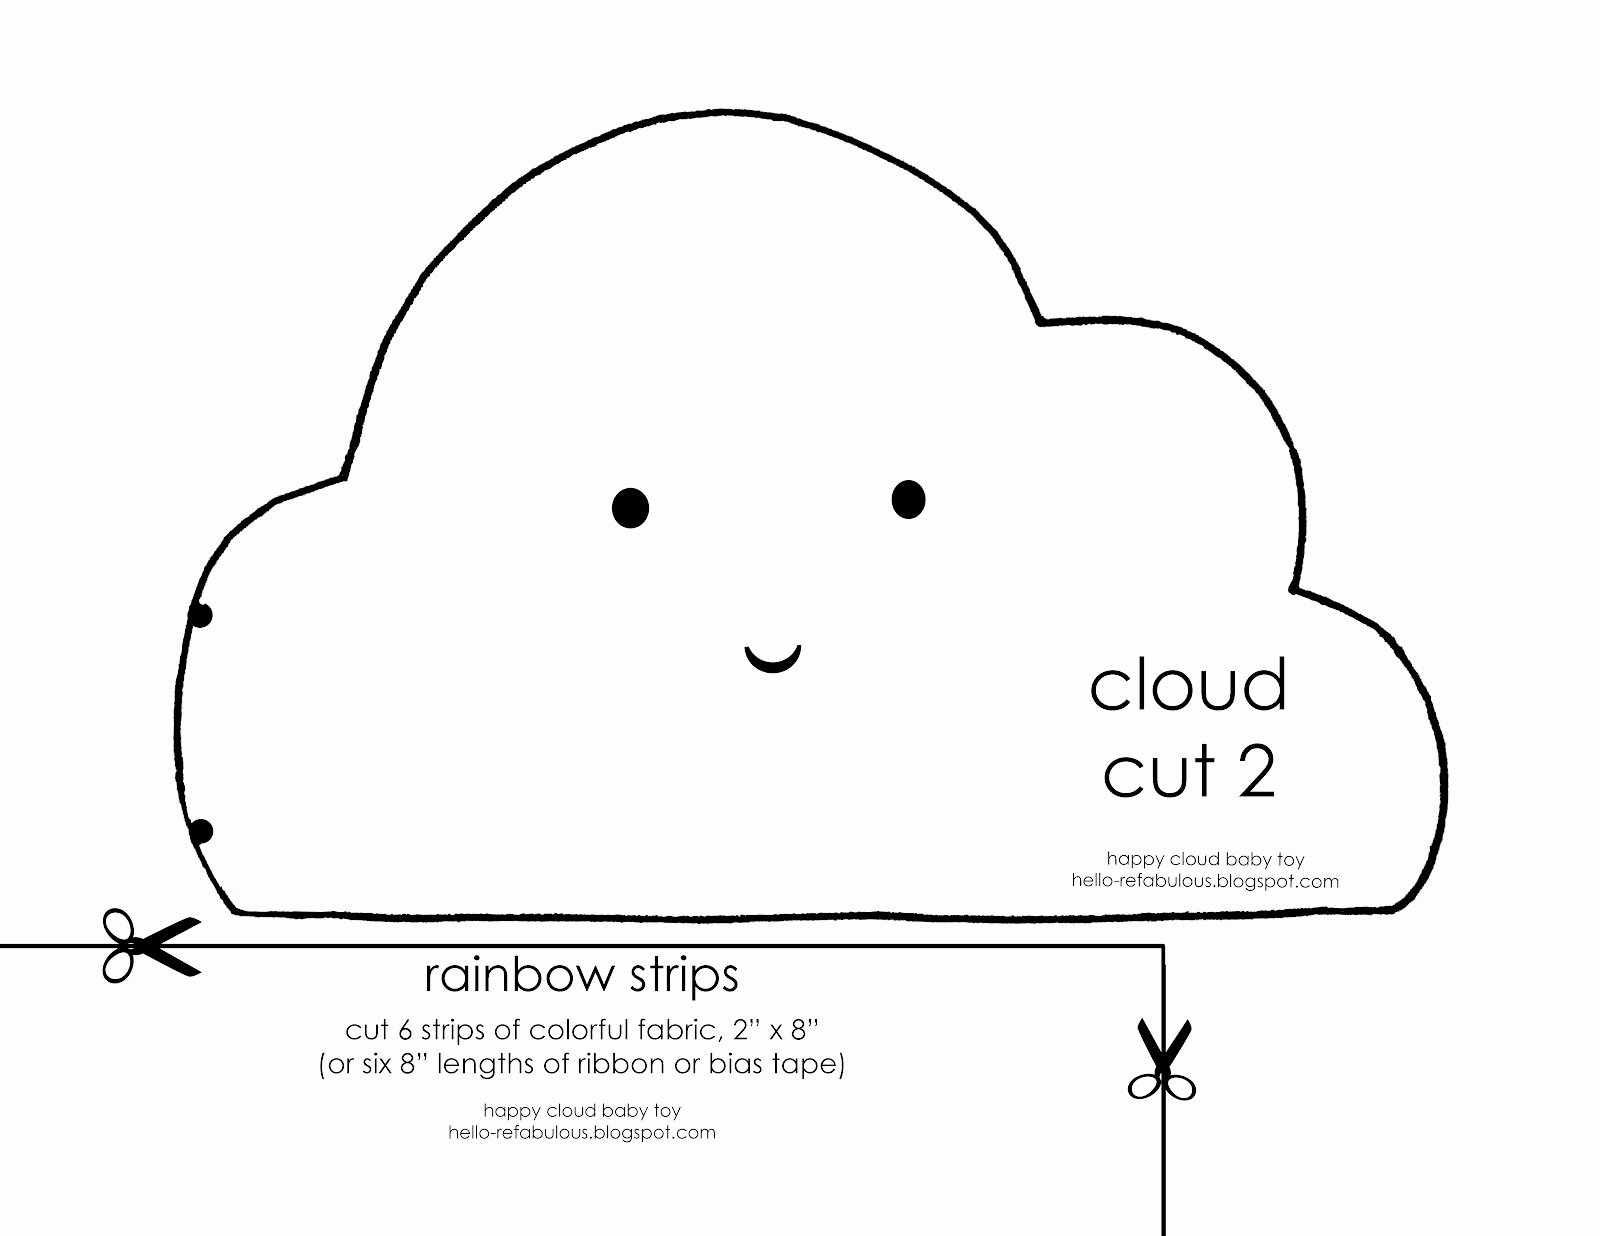 Cloud Template Printable New Hello Refabulous Happy Cloud Baby toy Tutorial